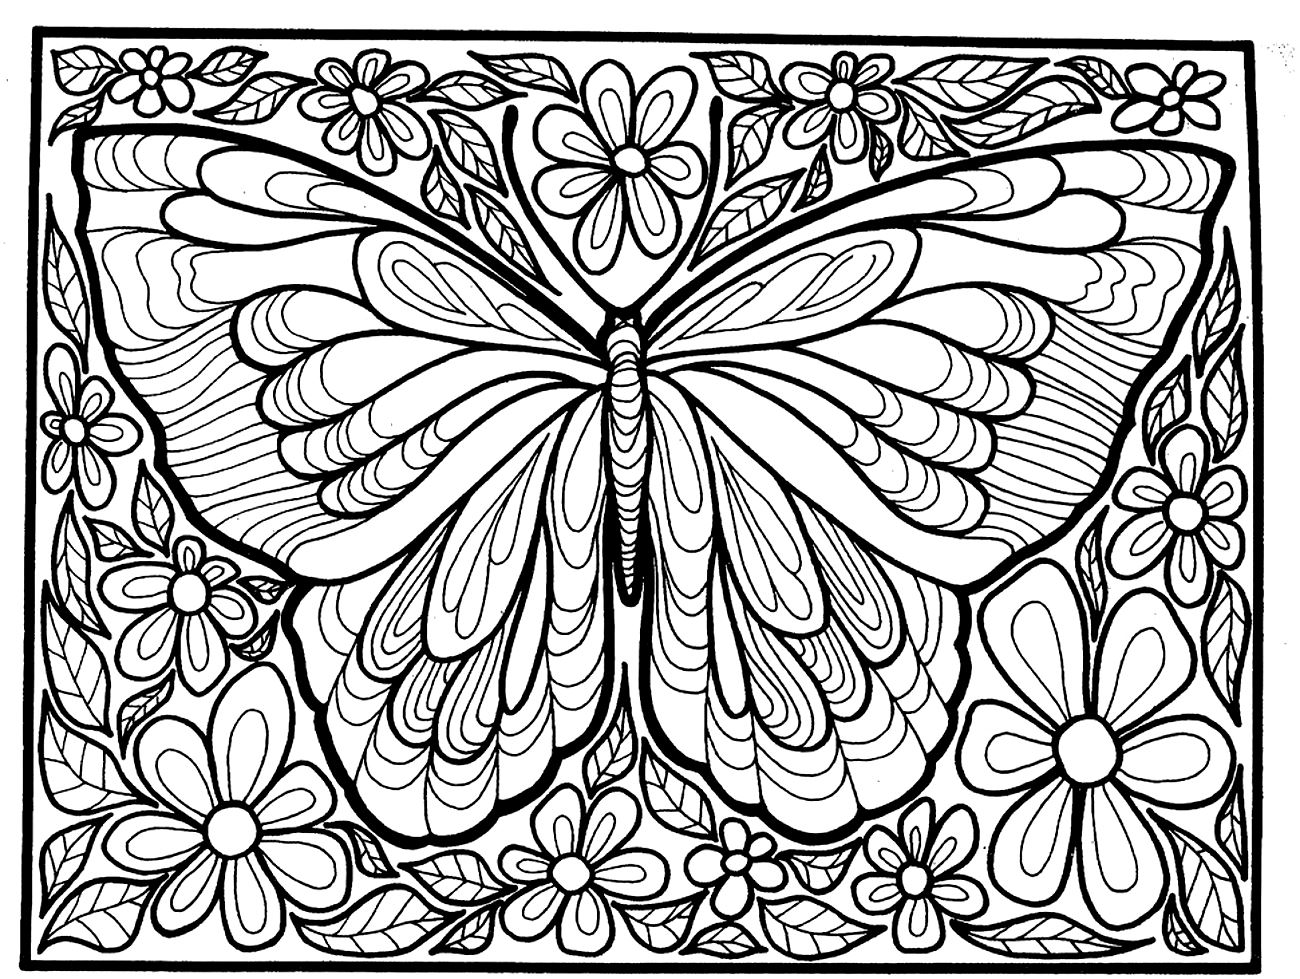 Big butterfly butterflies insects adult coloring pages for Coloring pages of butterflies for adults